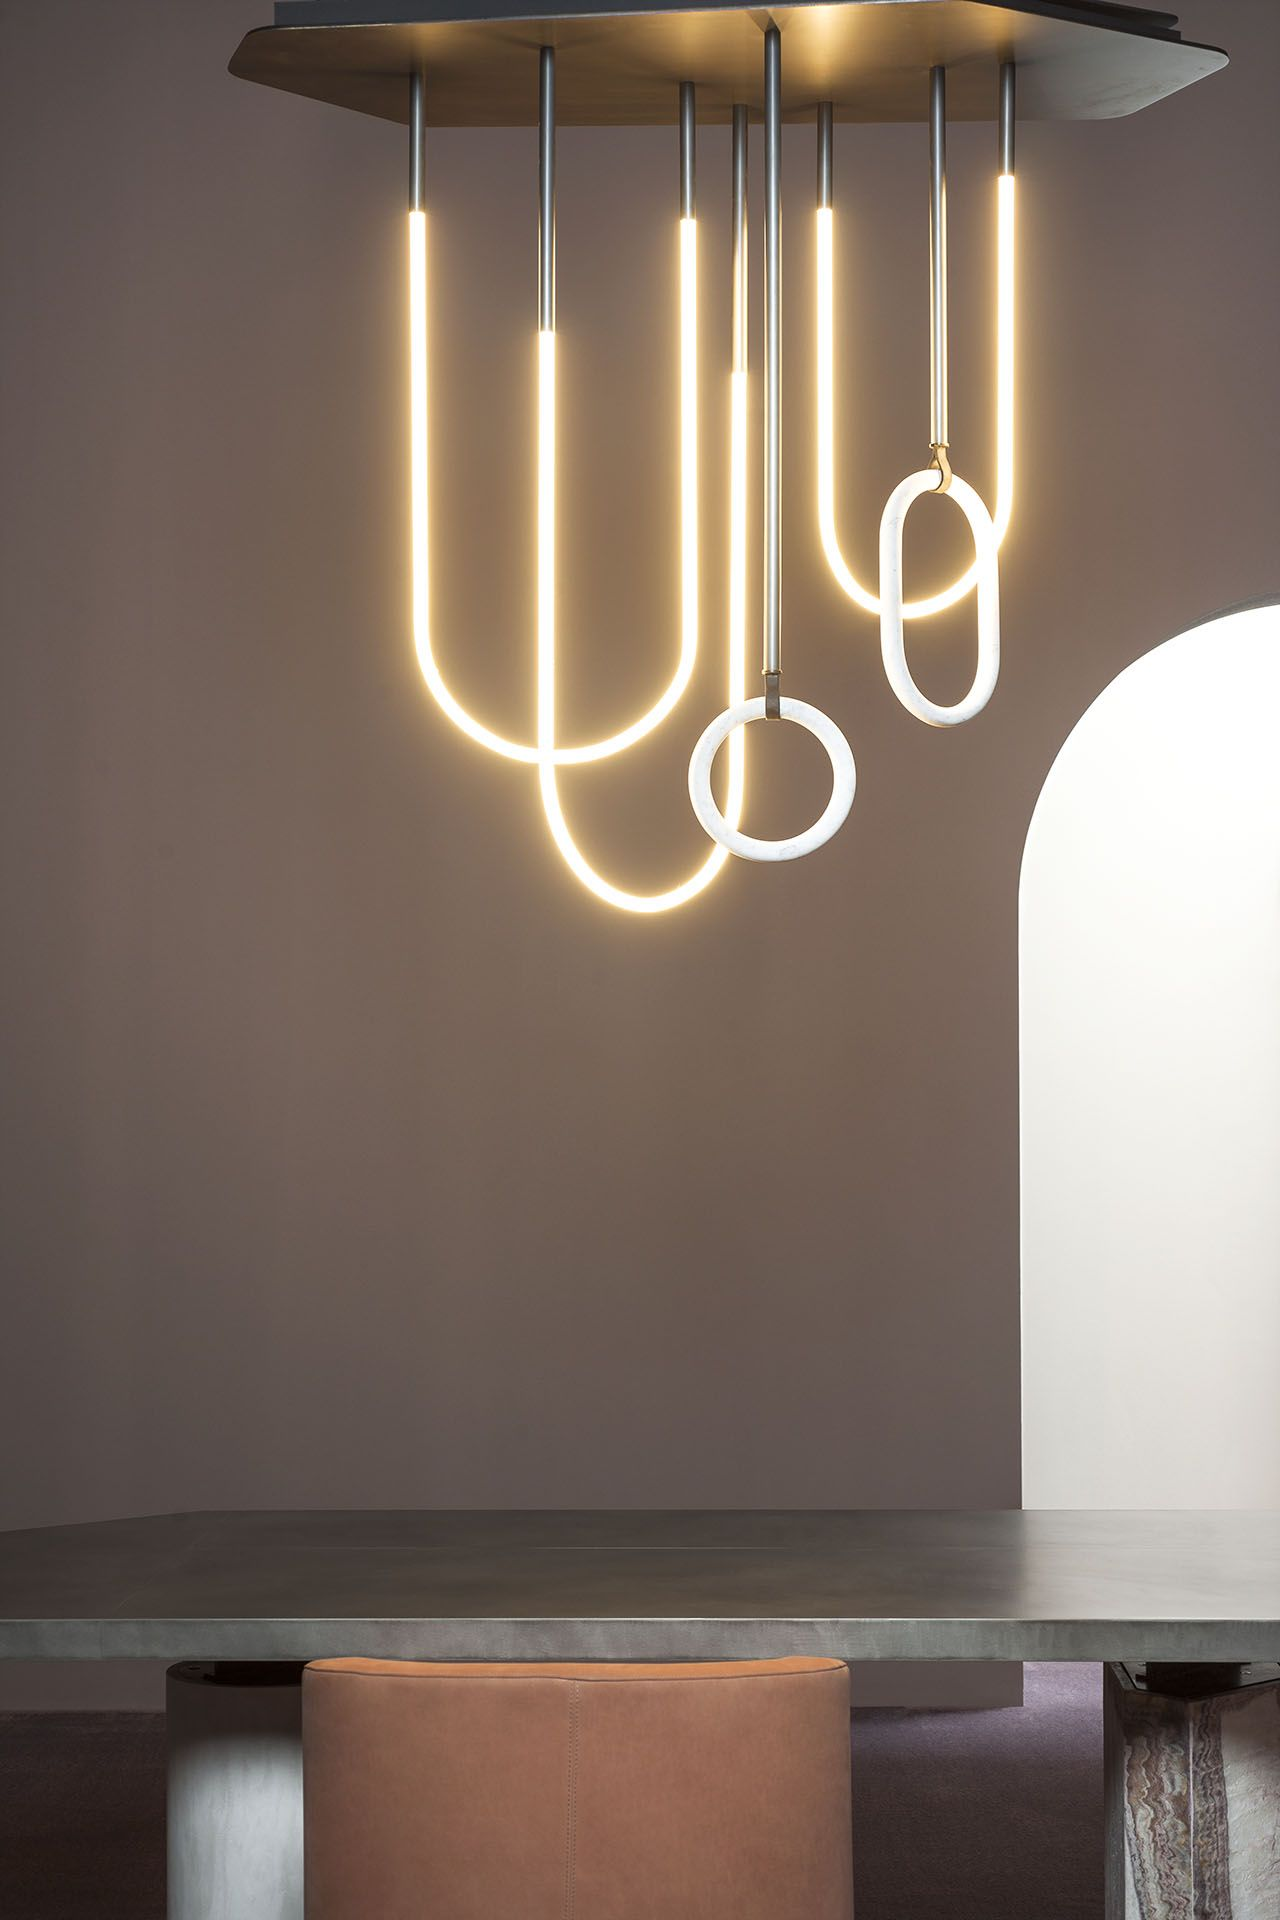 Say Yes Baxter Cool Lamps Lamp Lamp Design